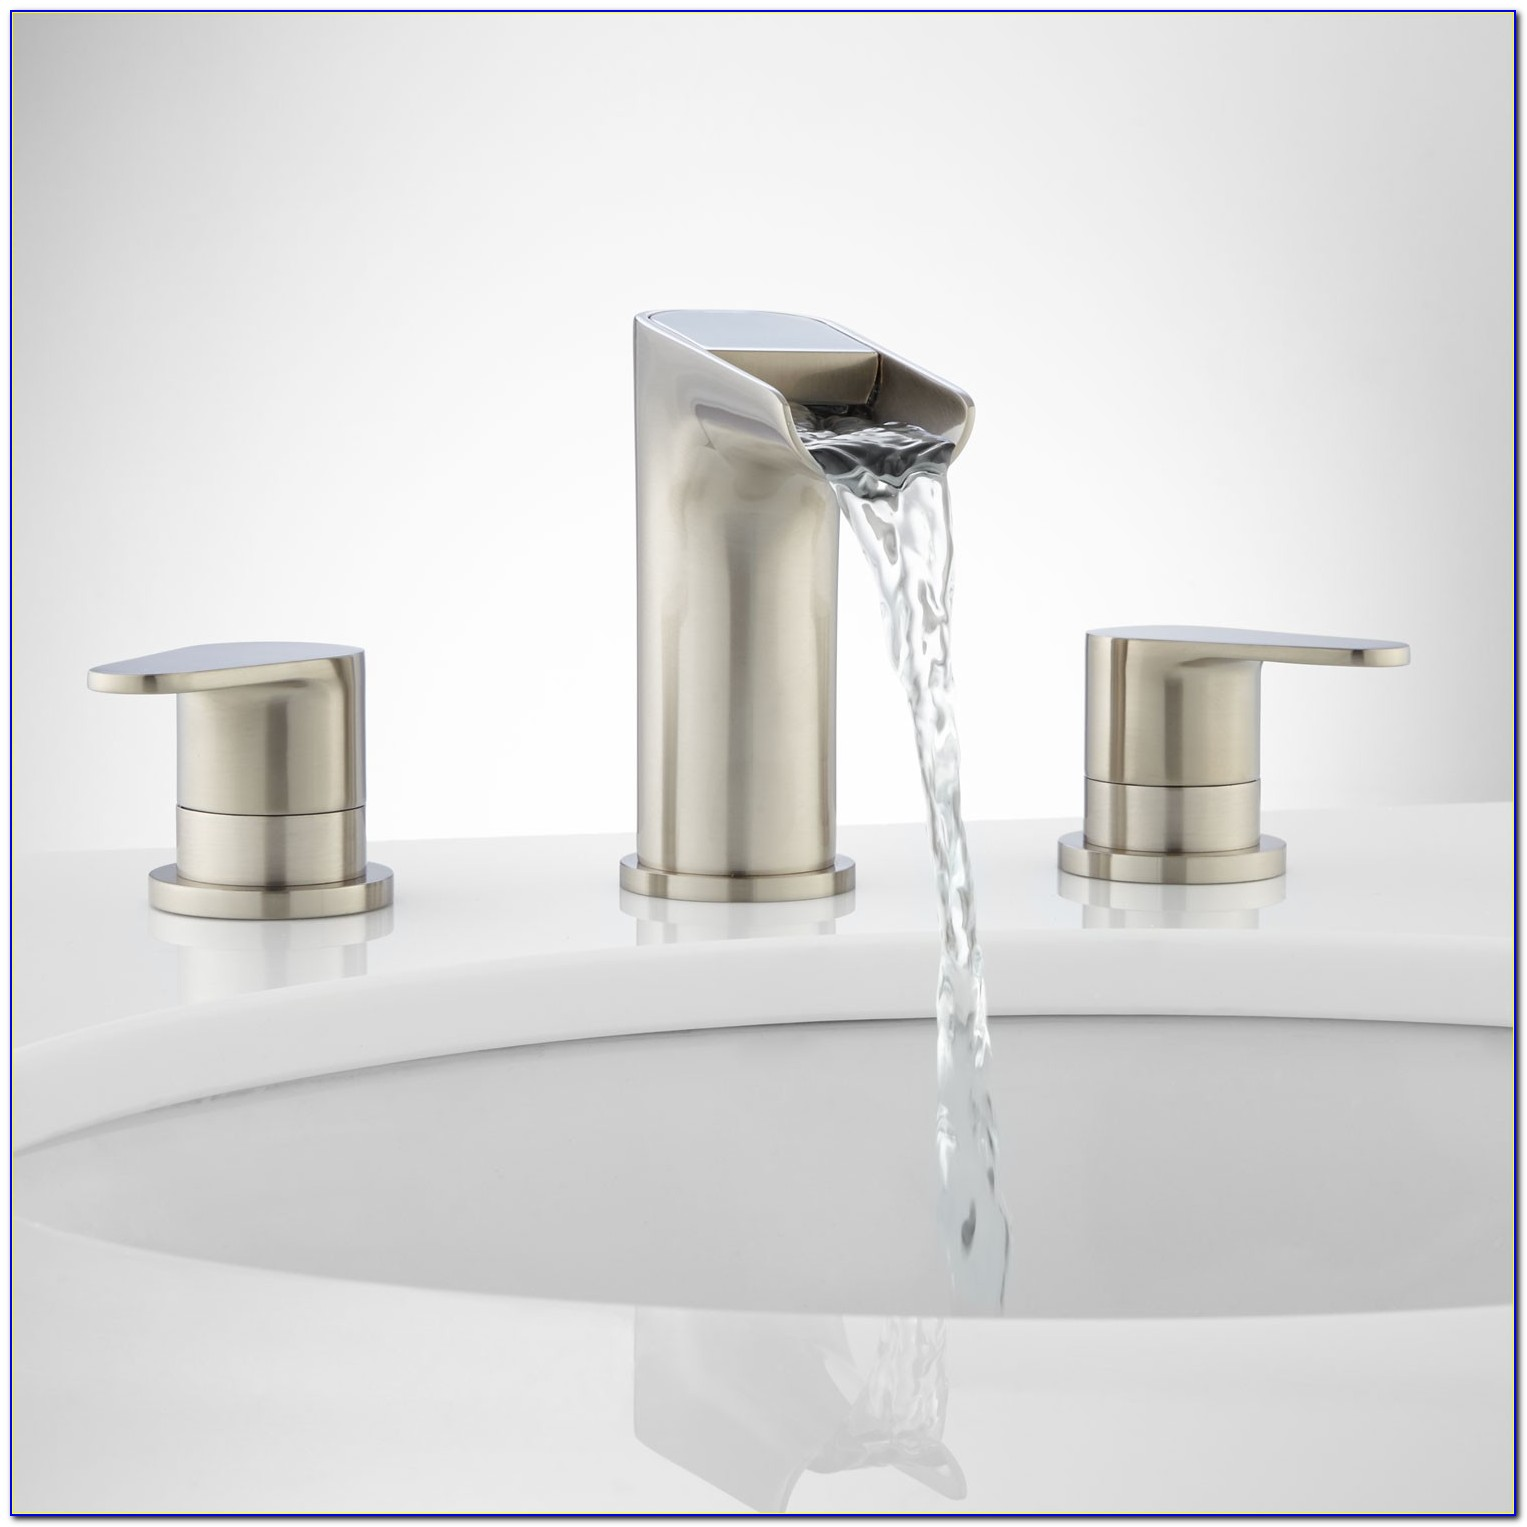 Waterfall Faucet For Bathroom Sink